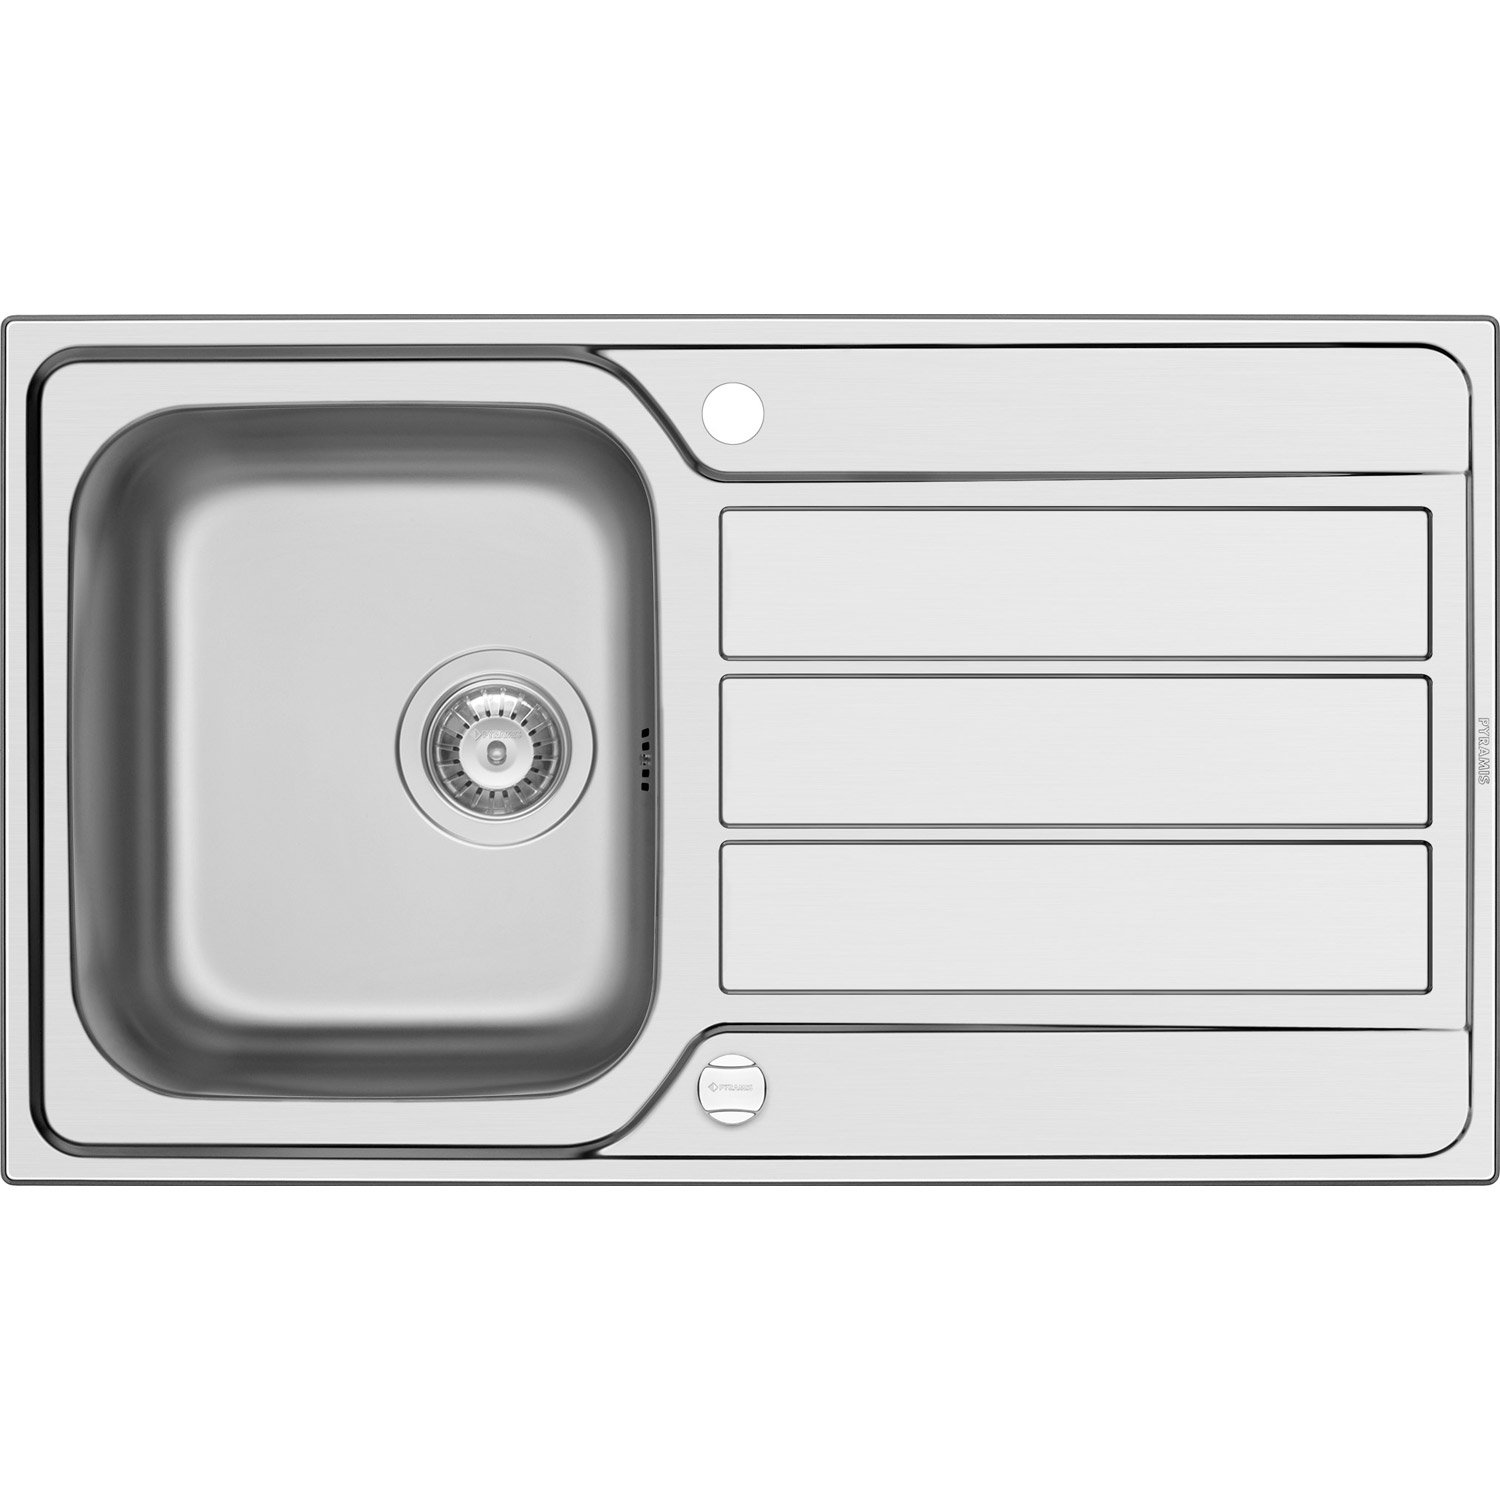 Evier Inox Deux Bacs Evier Inox Nid D Abeille 2 Bacs Leroy Merlin Pearlfection Fr